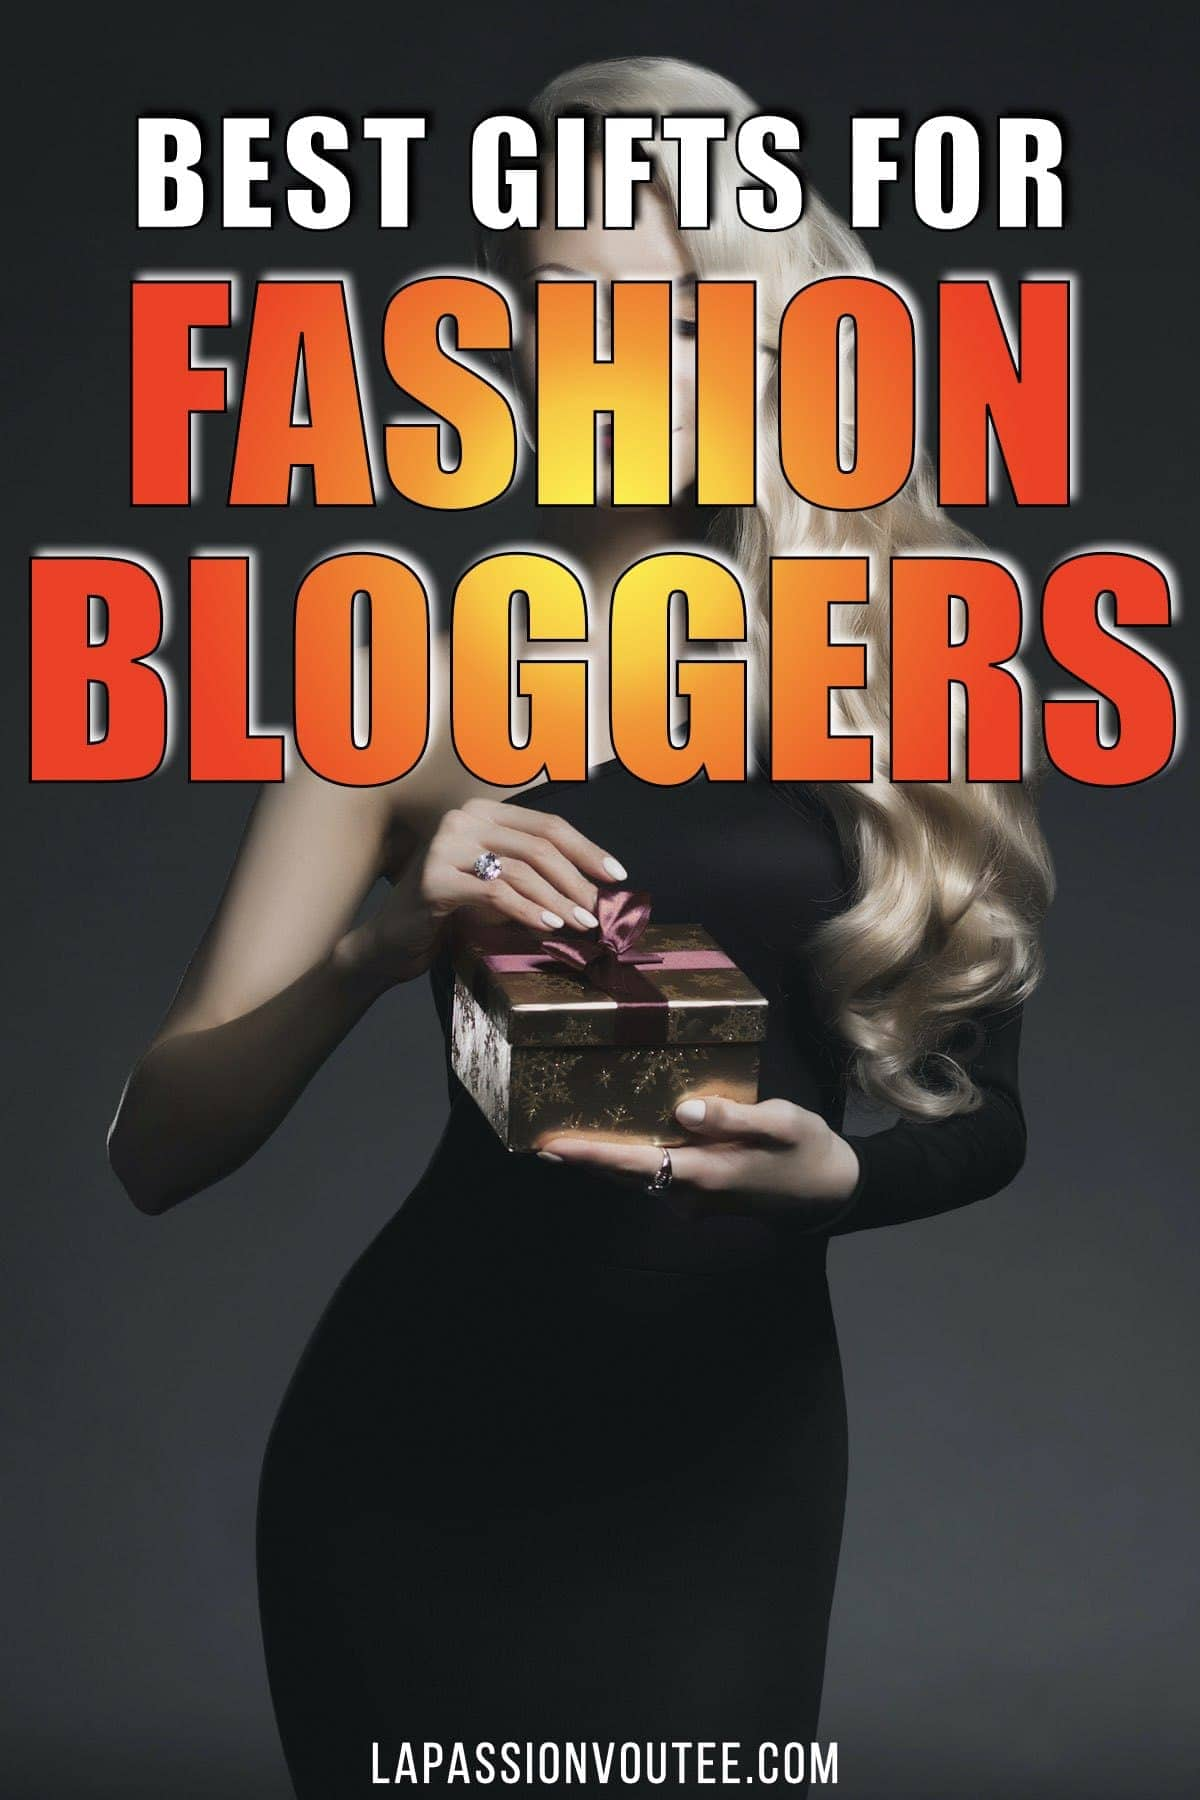 A roundup of the best gifts for fashion bloggers that she'll love AND use all year. From the must-have Marc Fisher boots to J.Crew shacket and Tory Burch sandals and more.